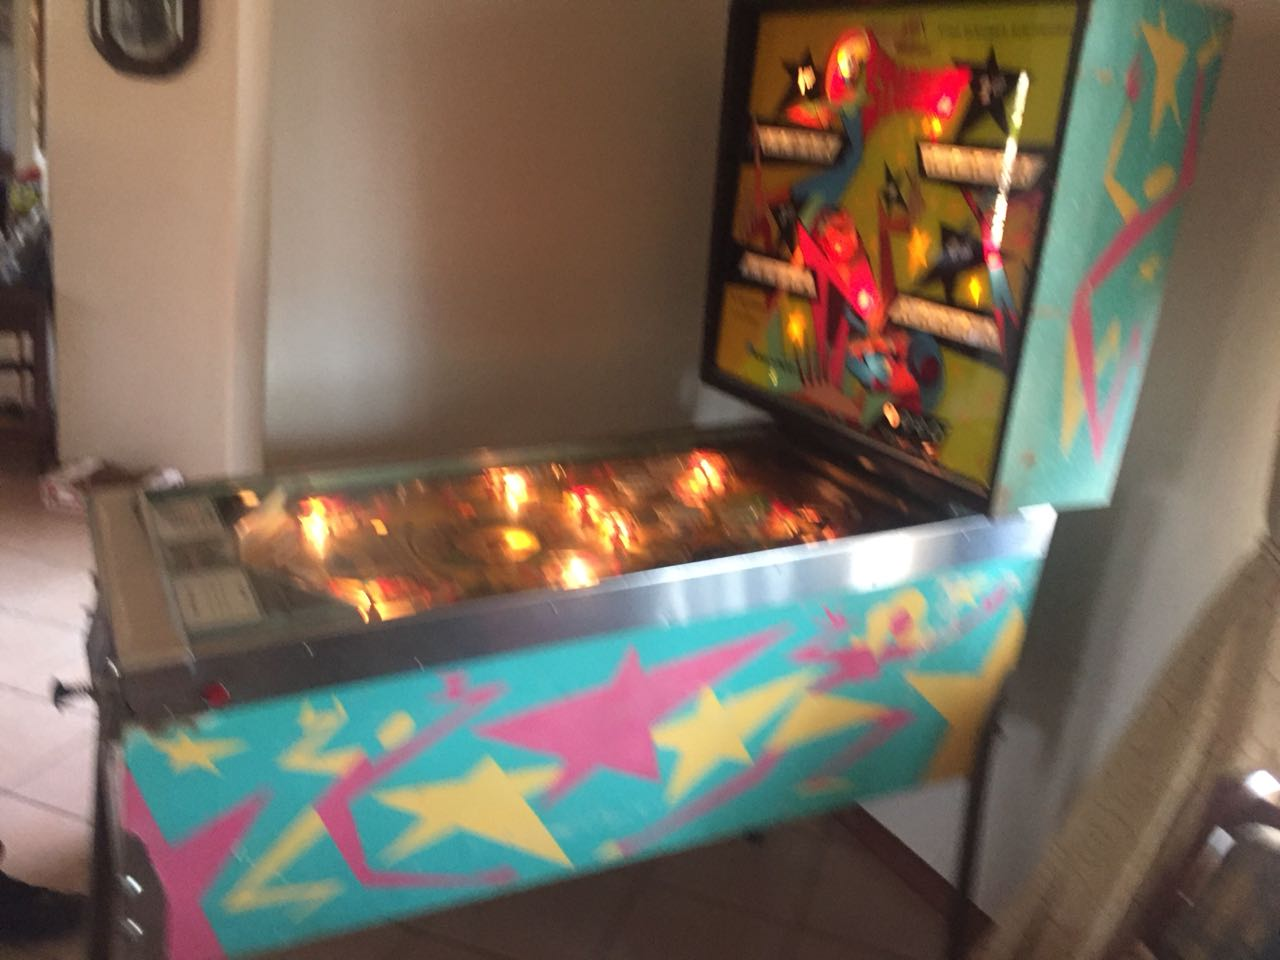 Pinball Machine wanted for cash in the Bloemfontein area